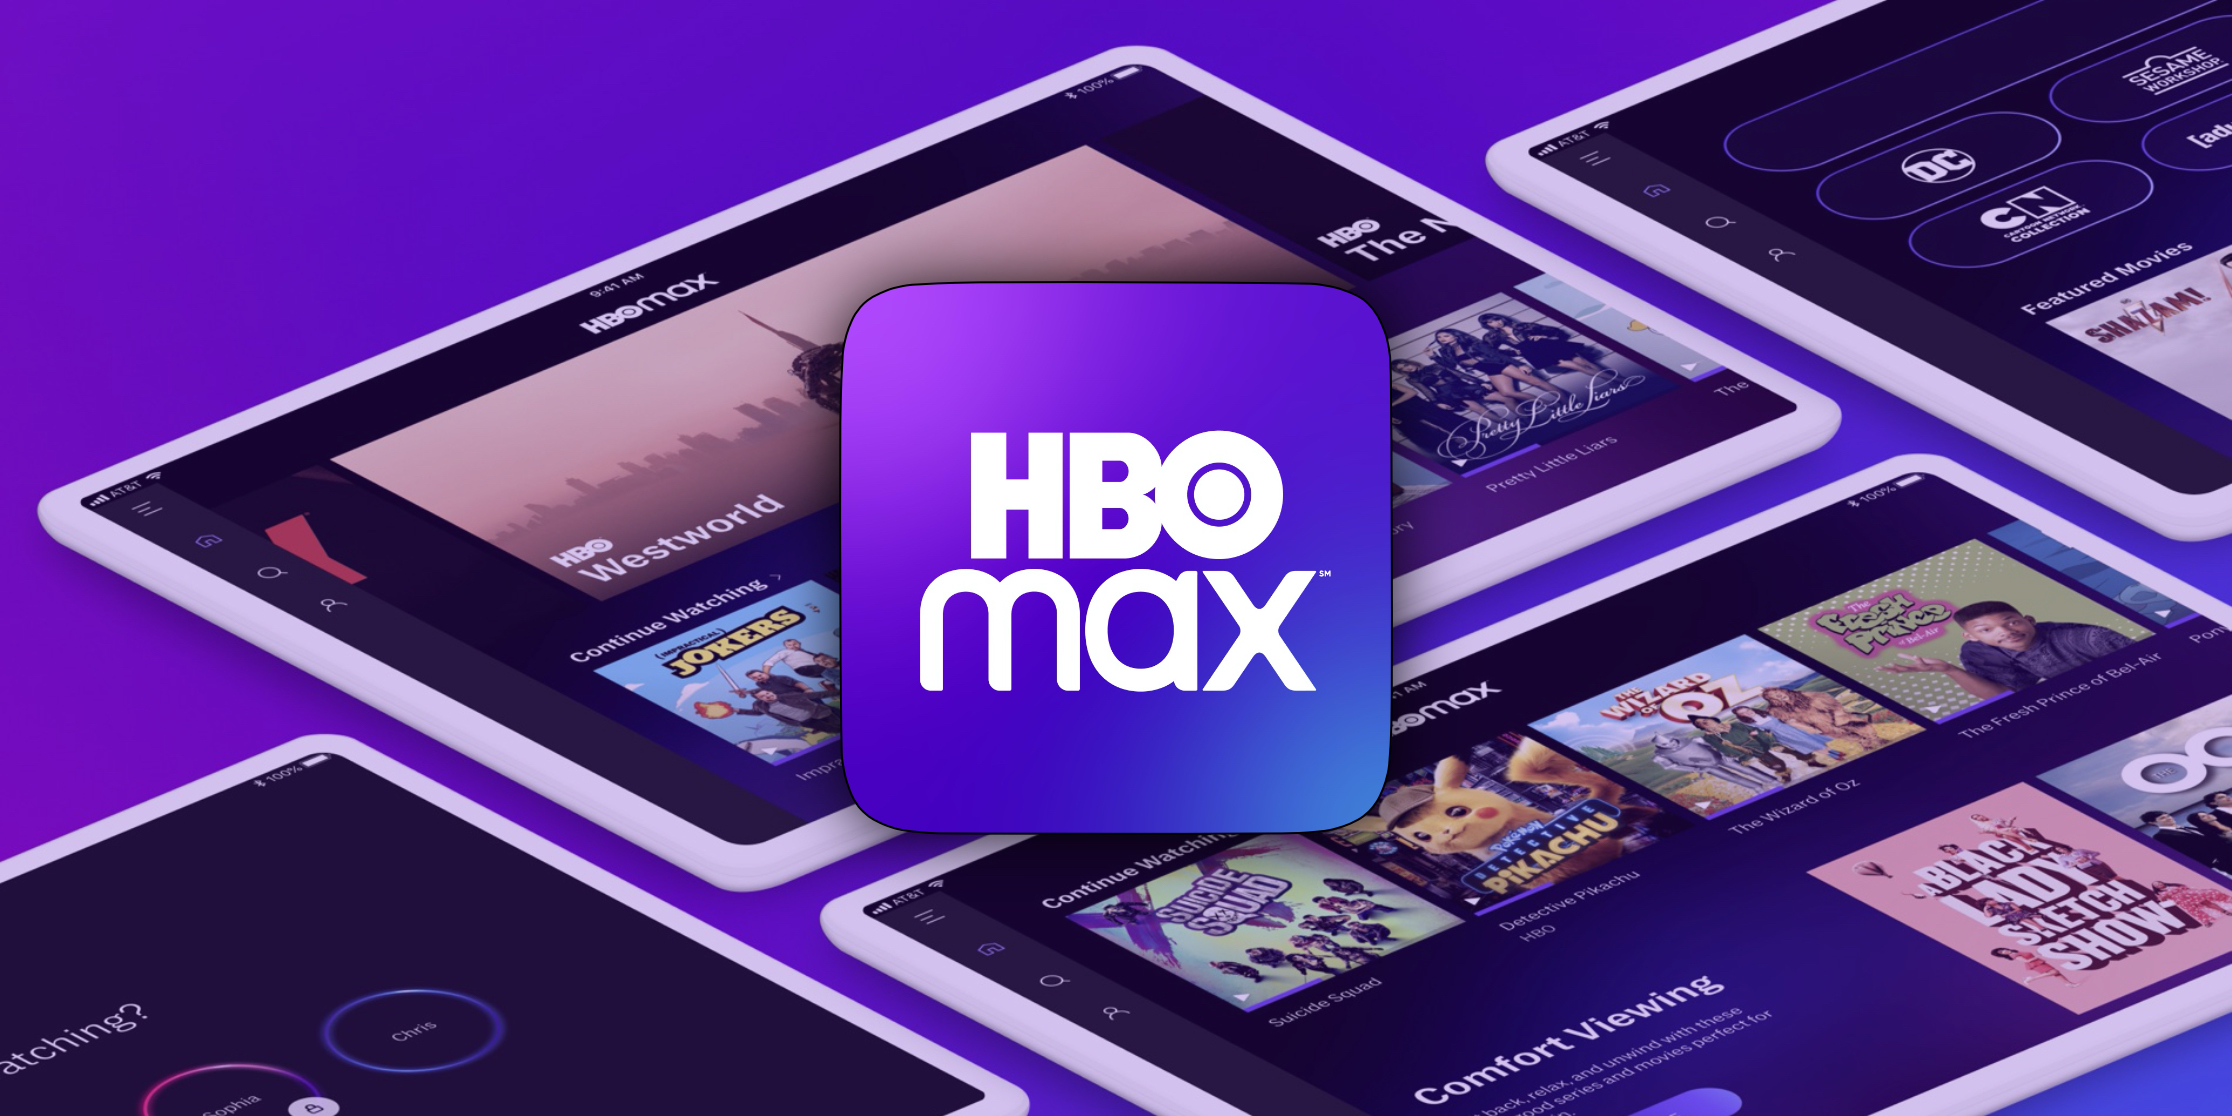 Hbo Max Now Available For Iphone Ipad And Apple Tv 9to5mac